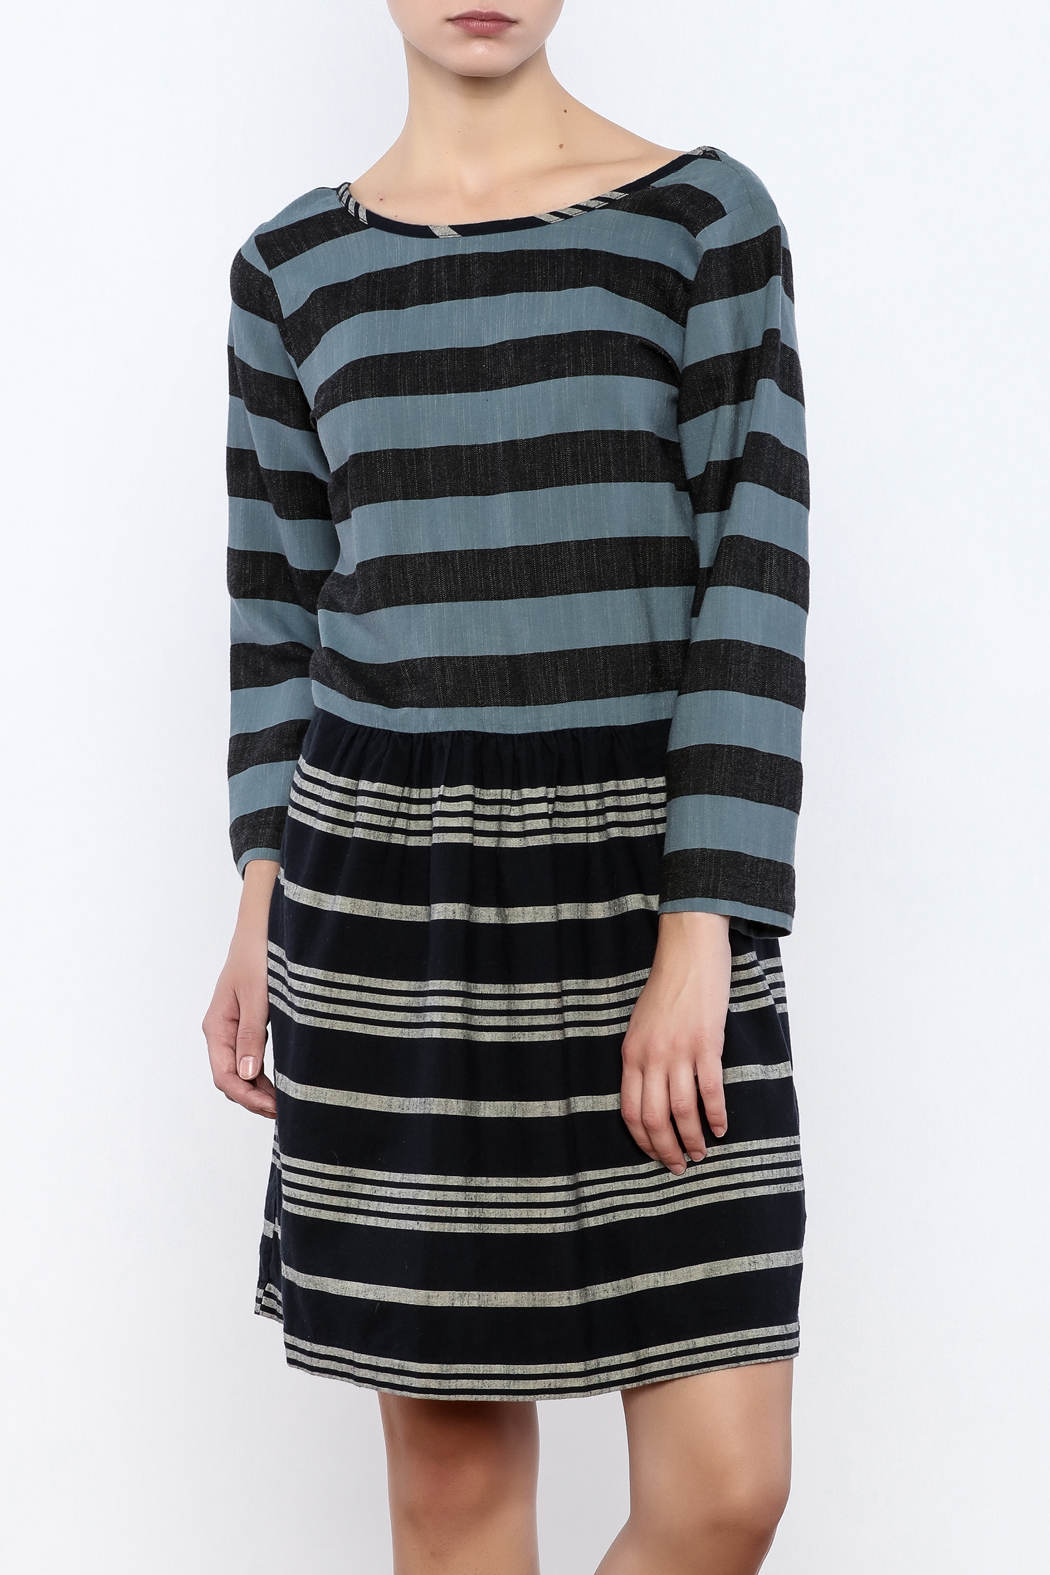 Ace & Jig Anna Dress - Front Cropped Image